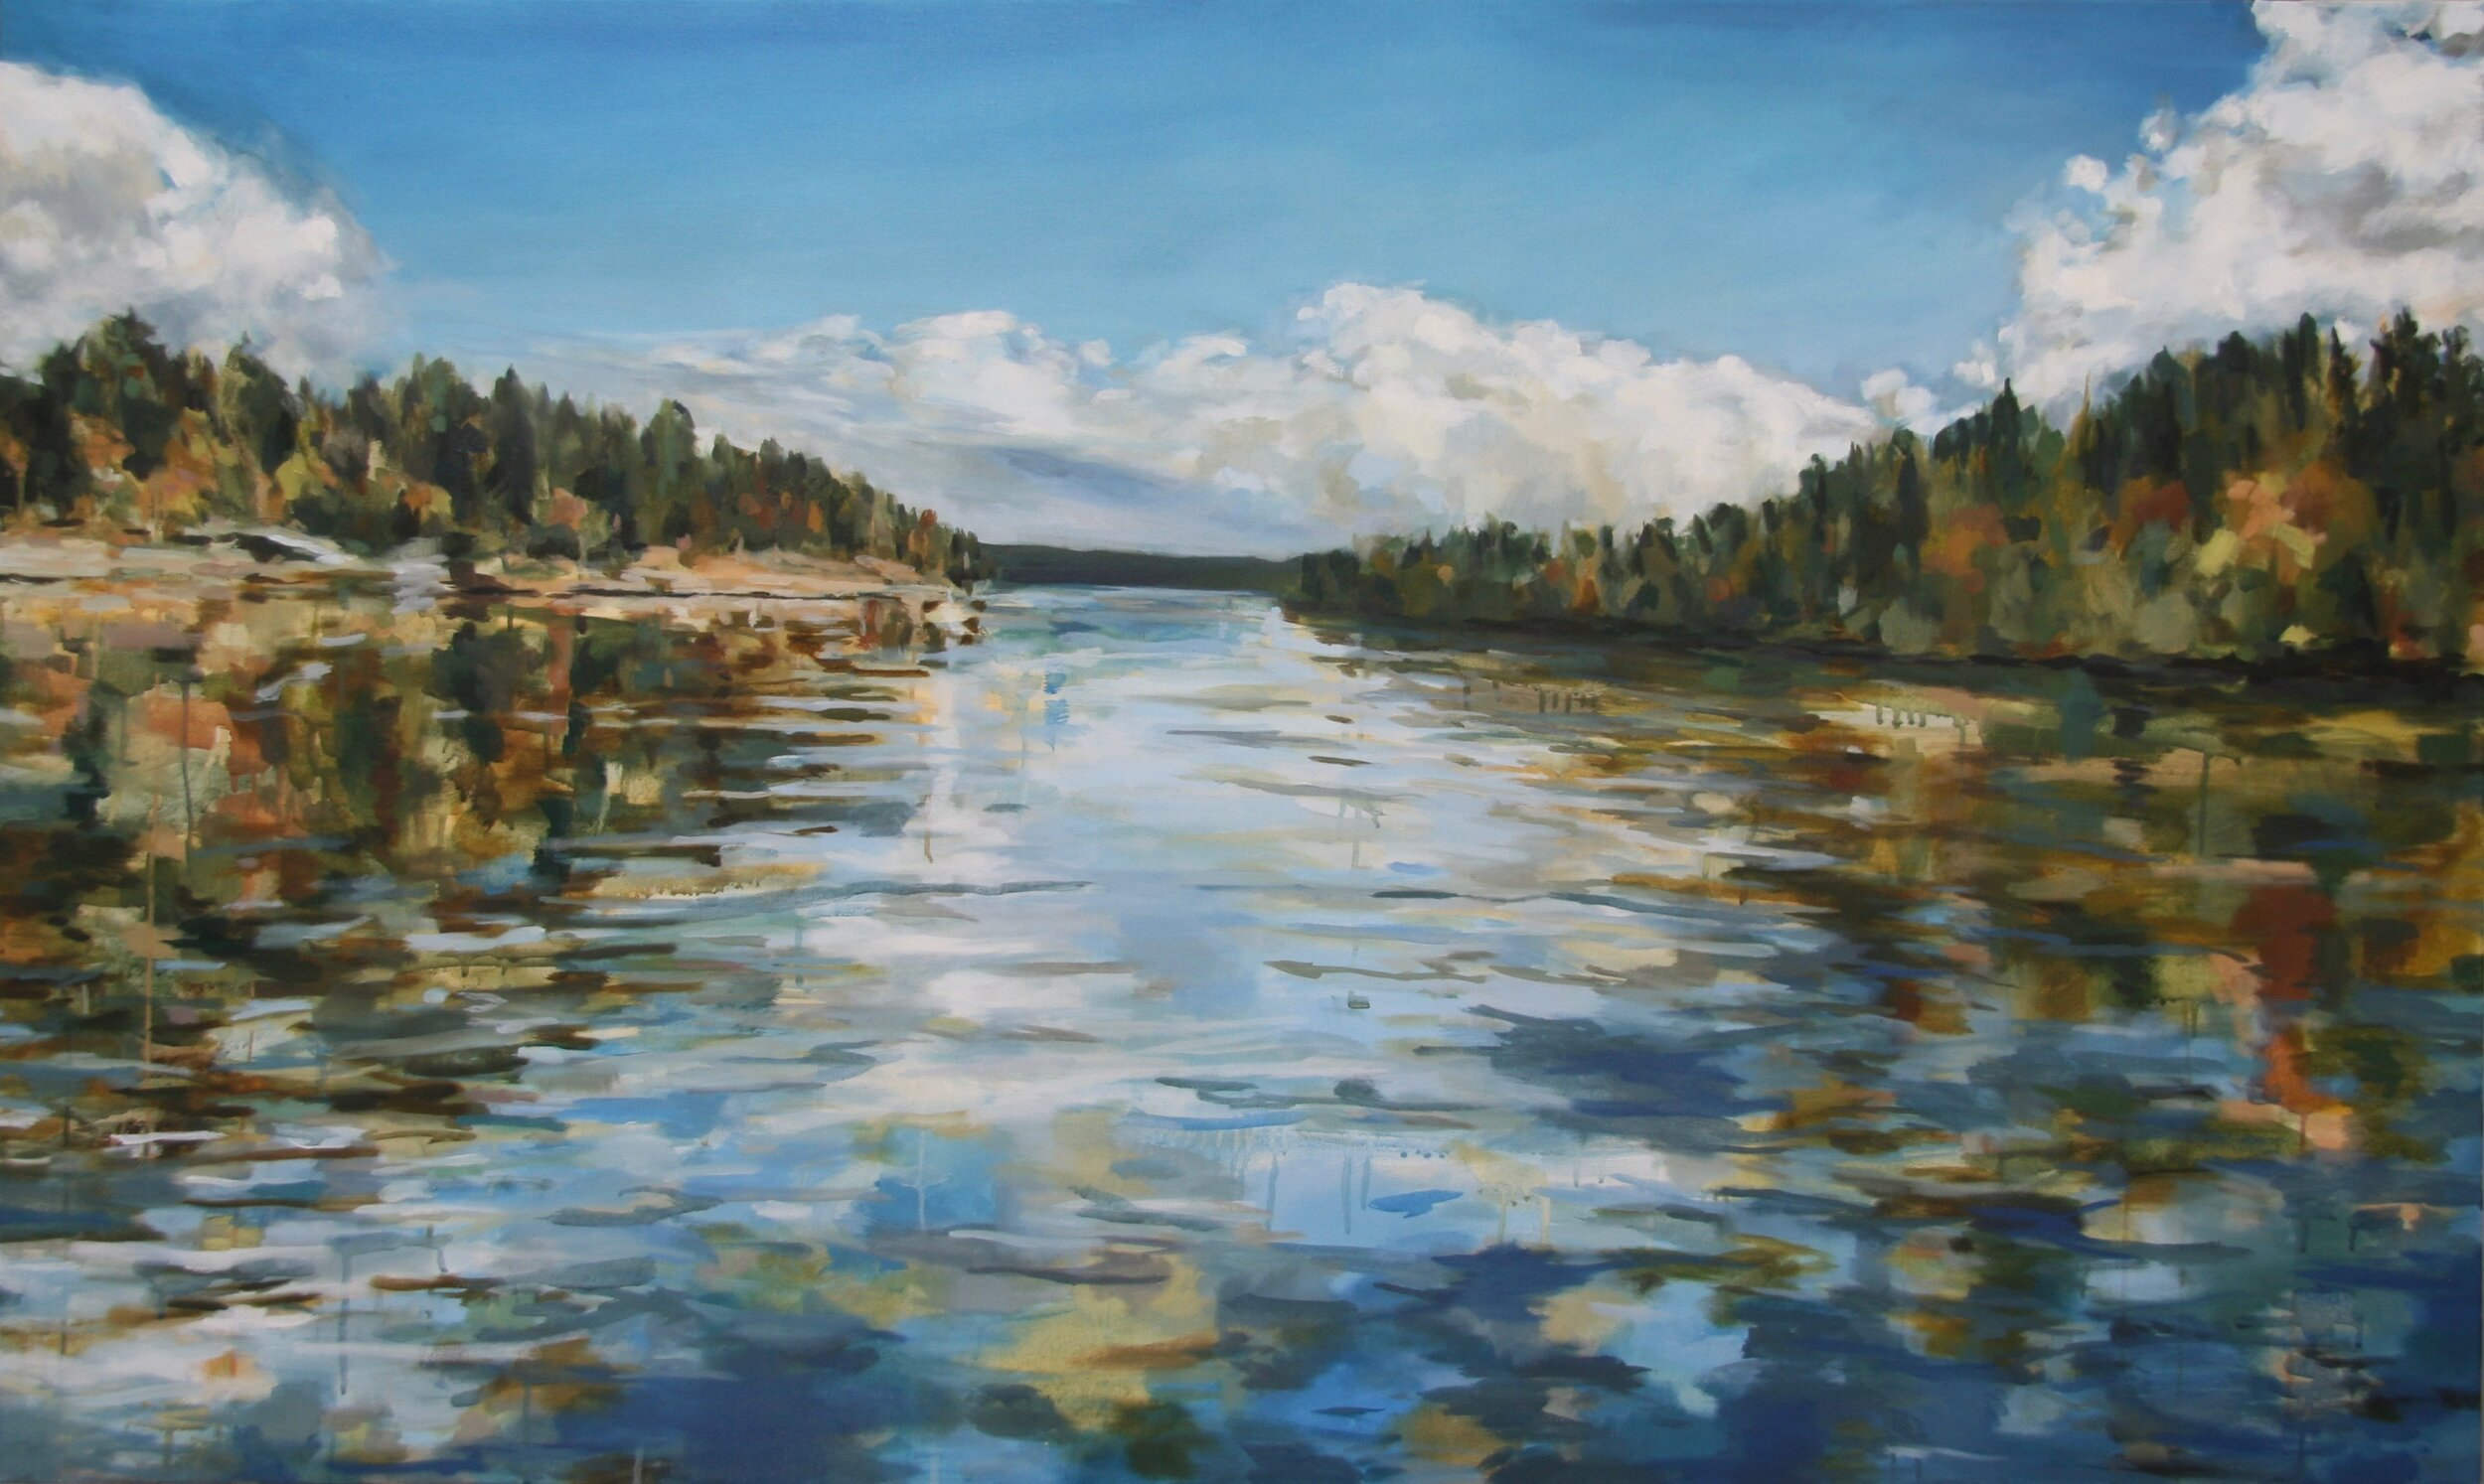 "'Willamette River'  2016  60"" x 36""  water soluble oil on canvas  sold"